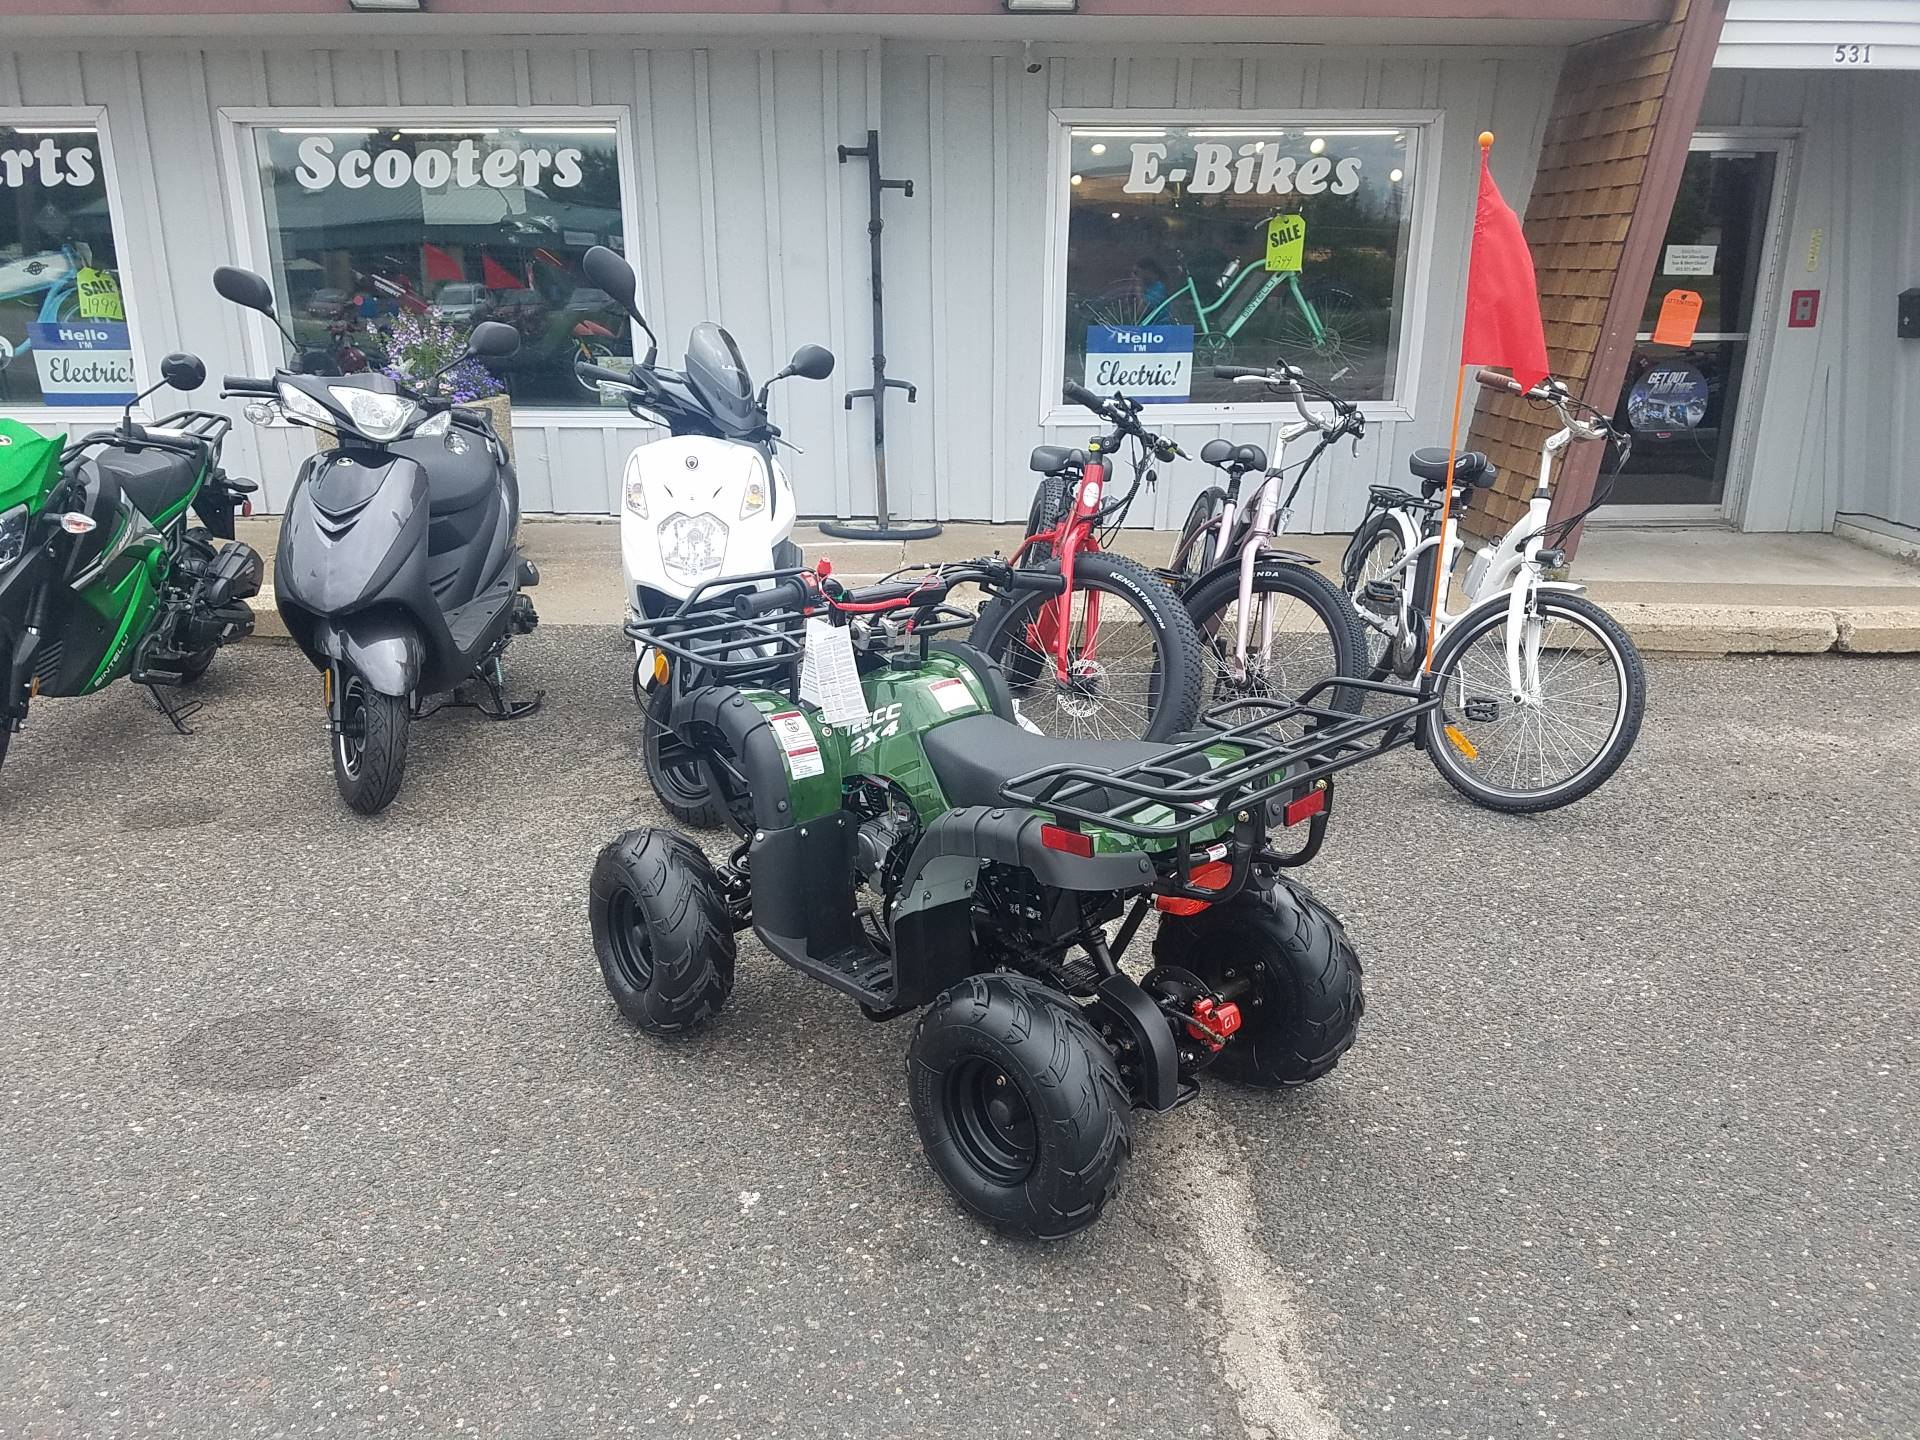 2020 Raytech Trooper 125 ATV in Forest Lake, Minnesota - Photo 8